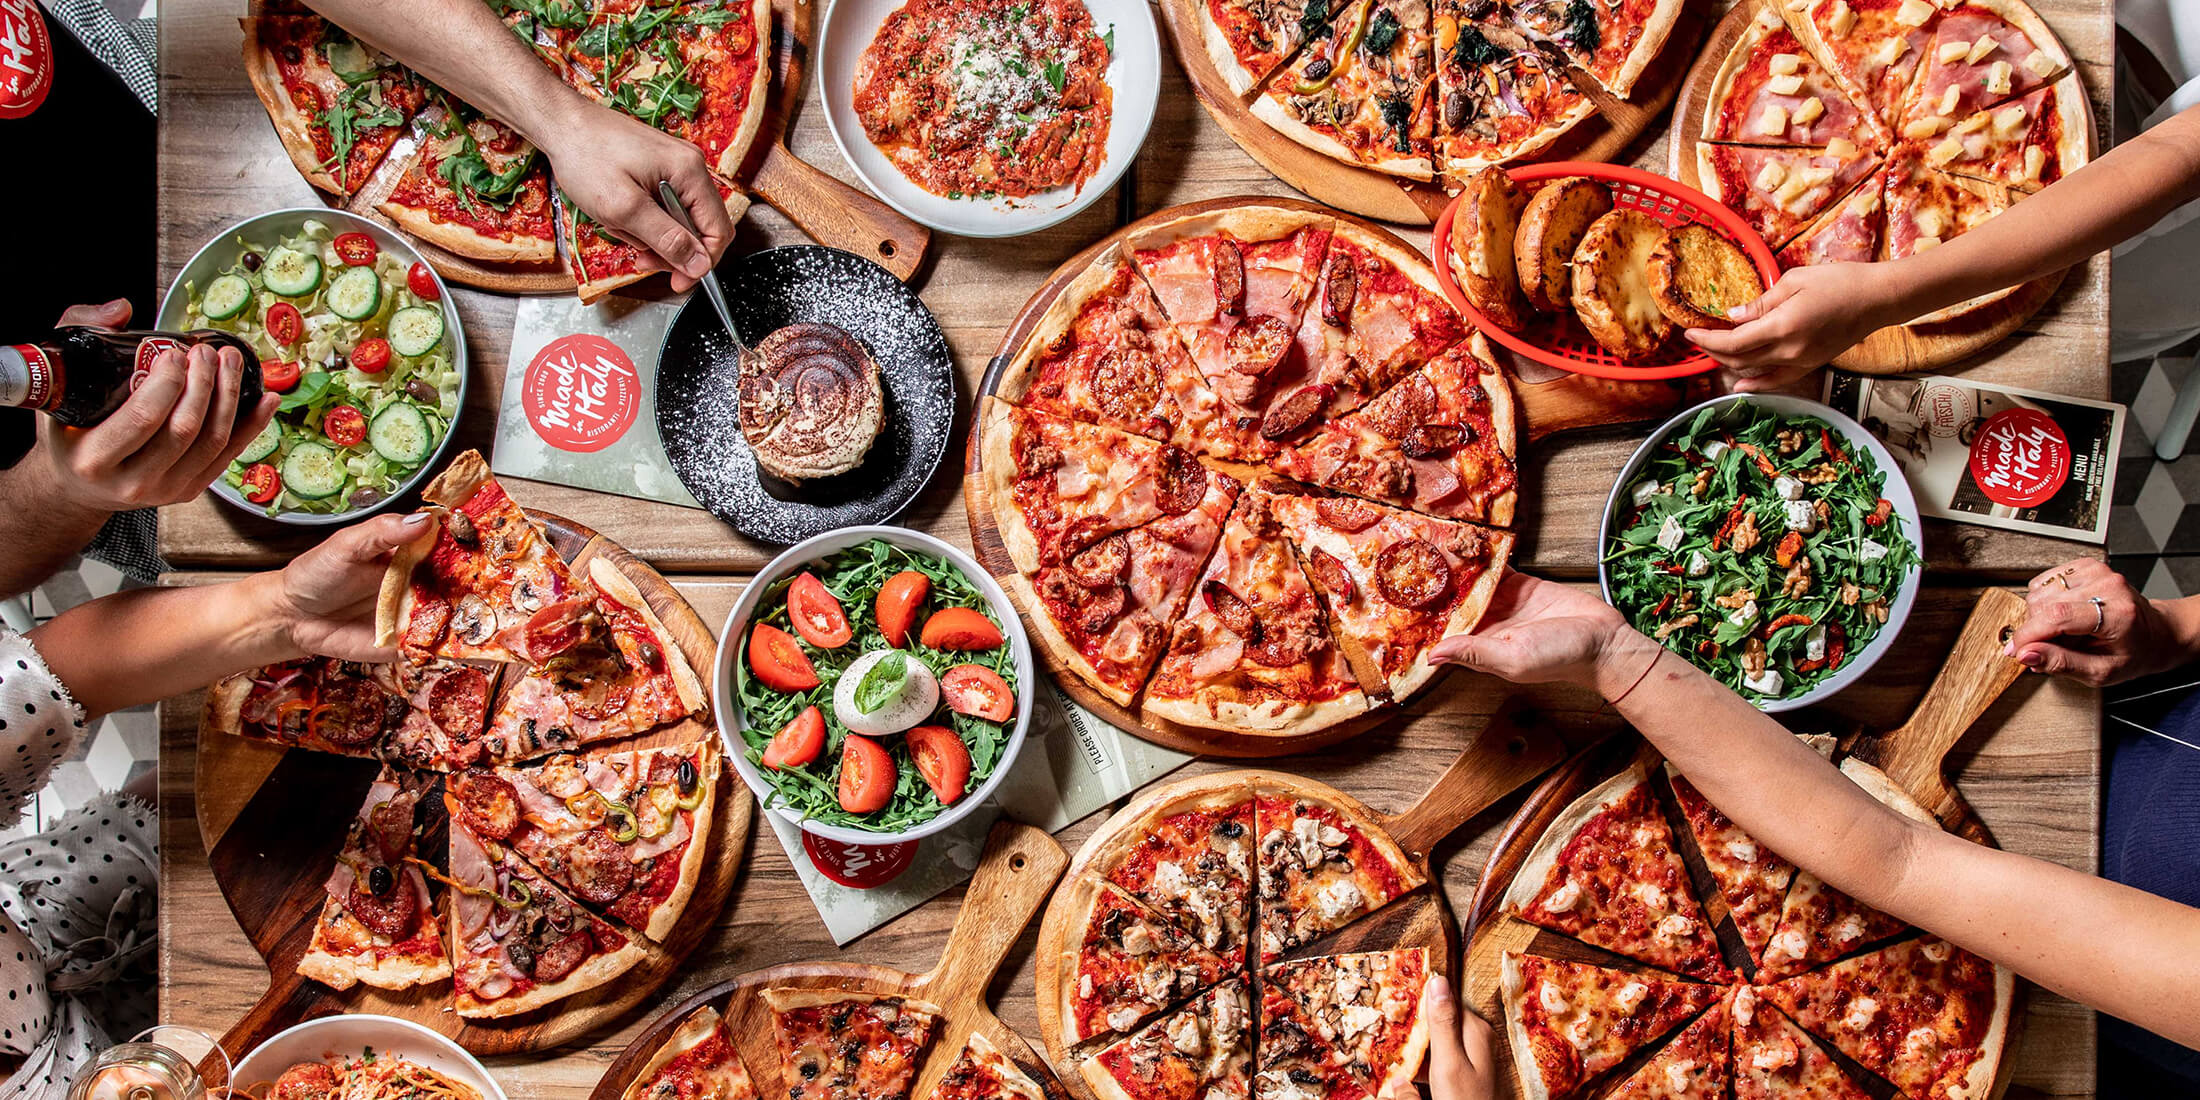 Made in Italy is an Italian restaurant in Alexandria serving pizza and pasta including take away.